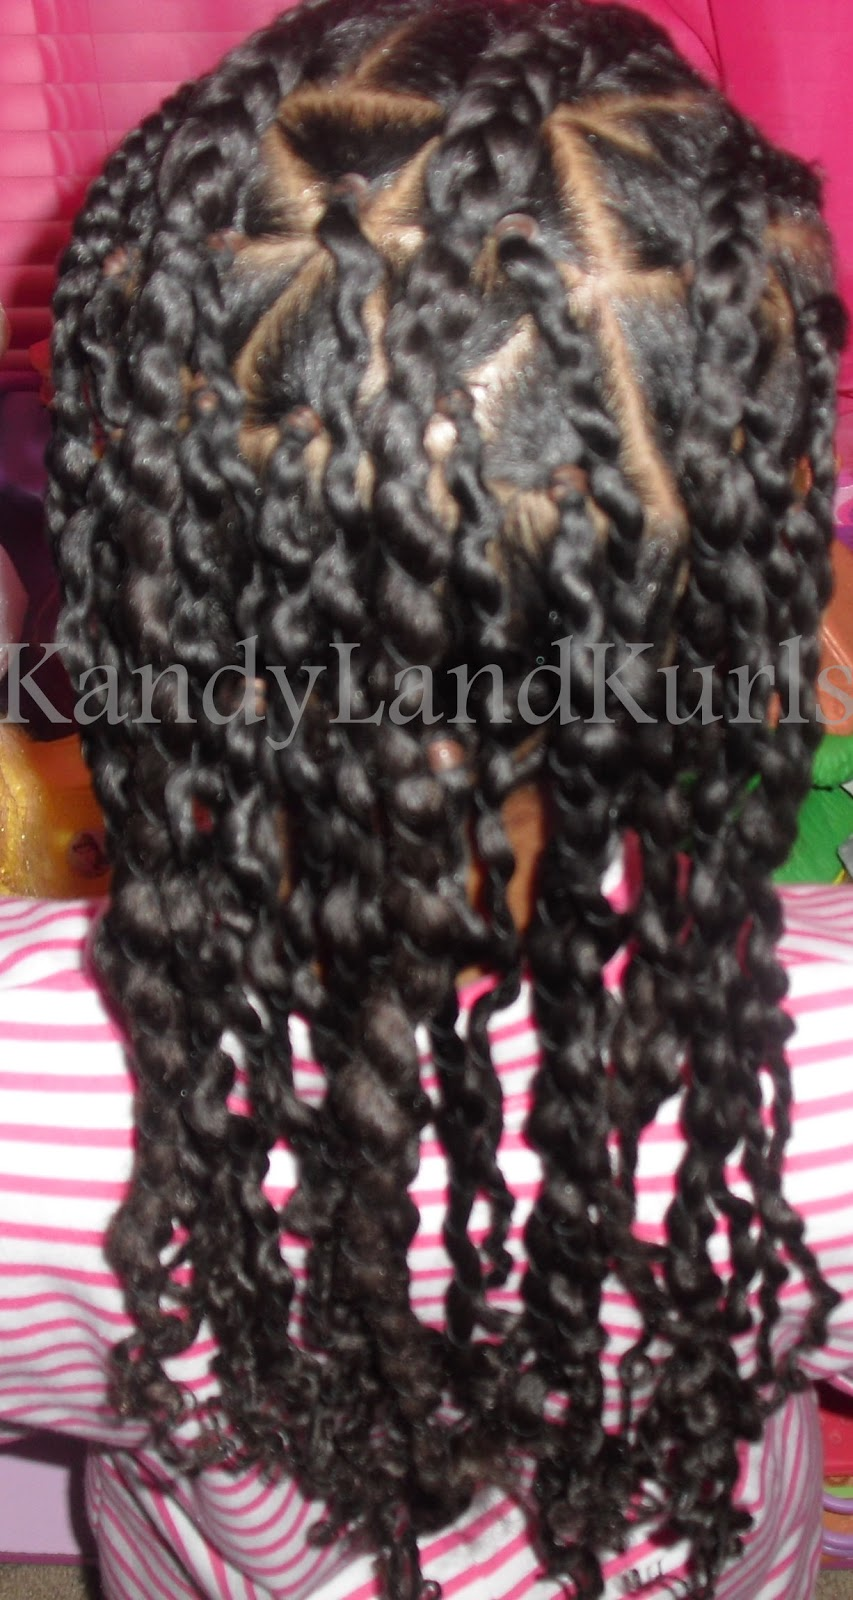 Crochet Braids Corkscrew : ... corkscrew braids corkscrew hair extensions hair extensions braiding